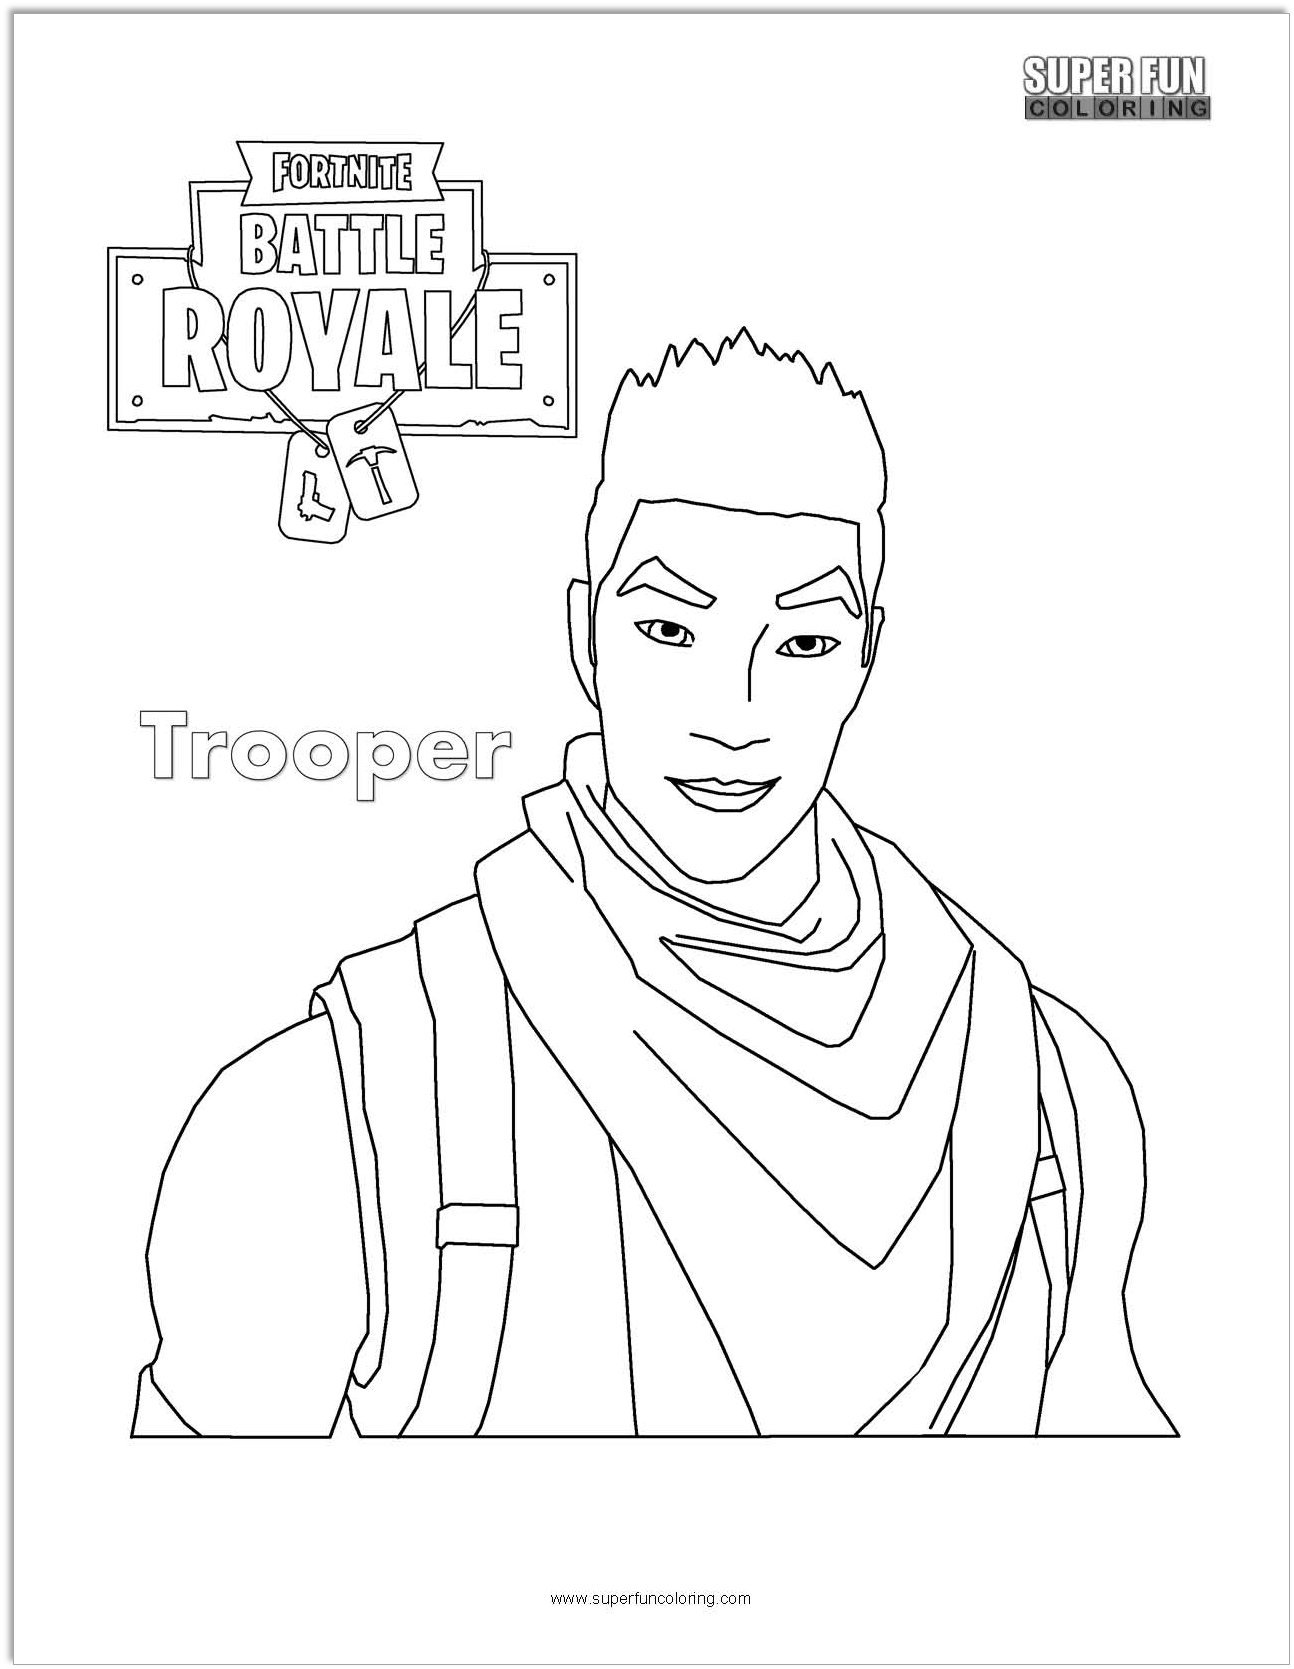 Reaper Skin Fortnite Coloring Pages Www Topsimages Com